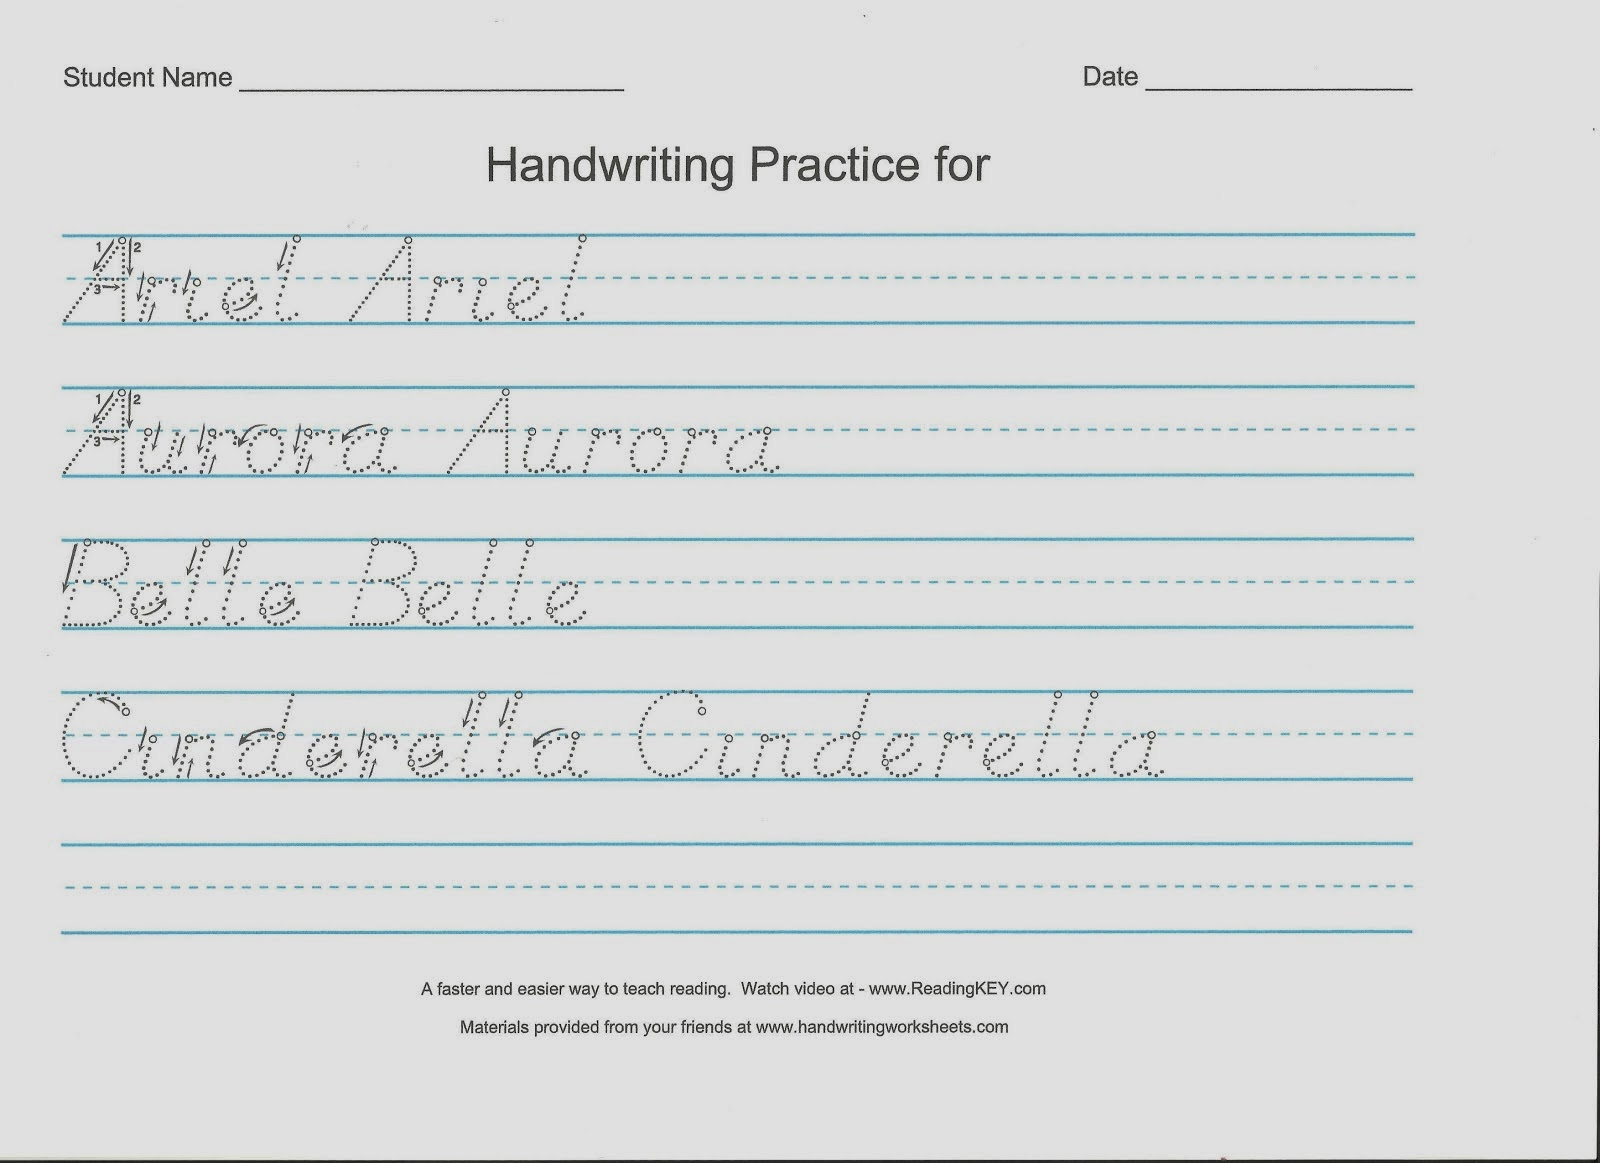 Search Results For Handwriting Practice Calendar 2015